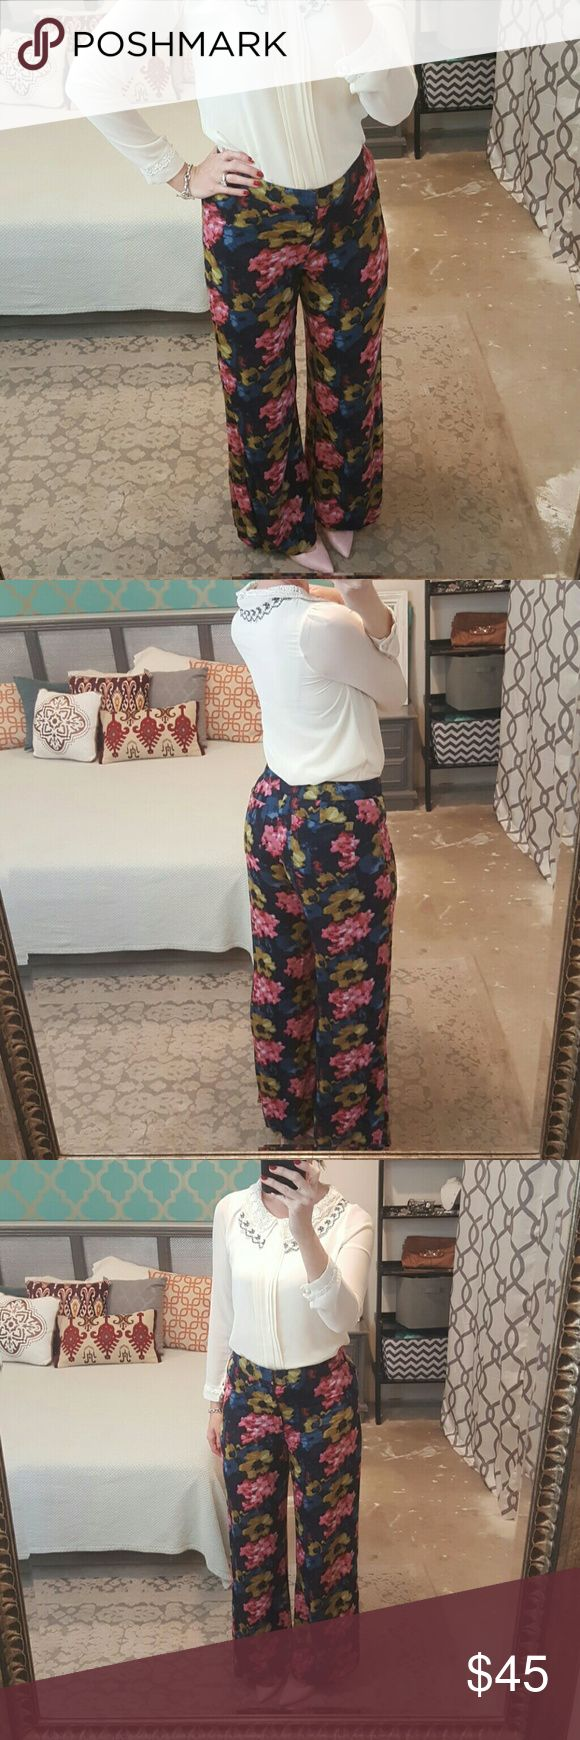 Abercrombie & Fitch Wide Leg Floral Pants I am selling a gorgeous pair of Abercrombie & Fitch wide leg trousers.  These are a stunning, flattering silhouette in a breathtaking and feminine floral print.  The color hues feature, navy blue, midnight blue, olive green, pink and very minimal touches of white.  These feel uber soft on and translate from work to play wonderfully!  Excellent condition size 10. Abercrombie & Fitch Pants Wide Leg